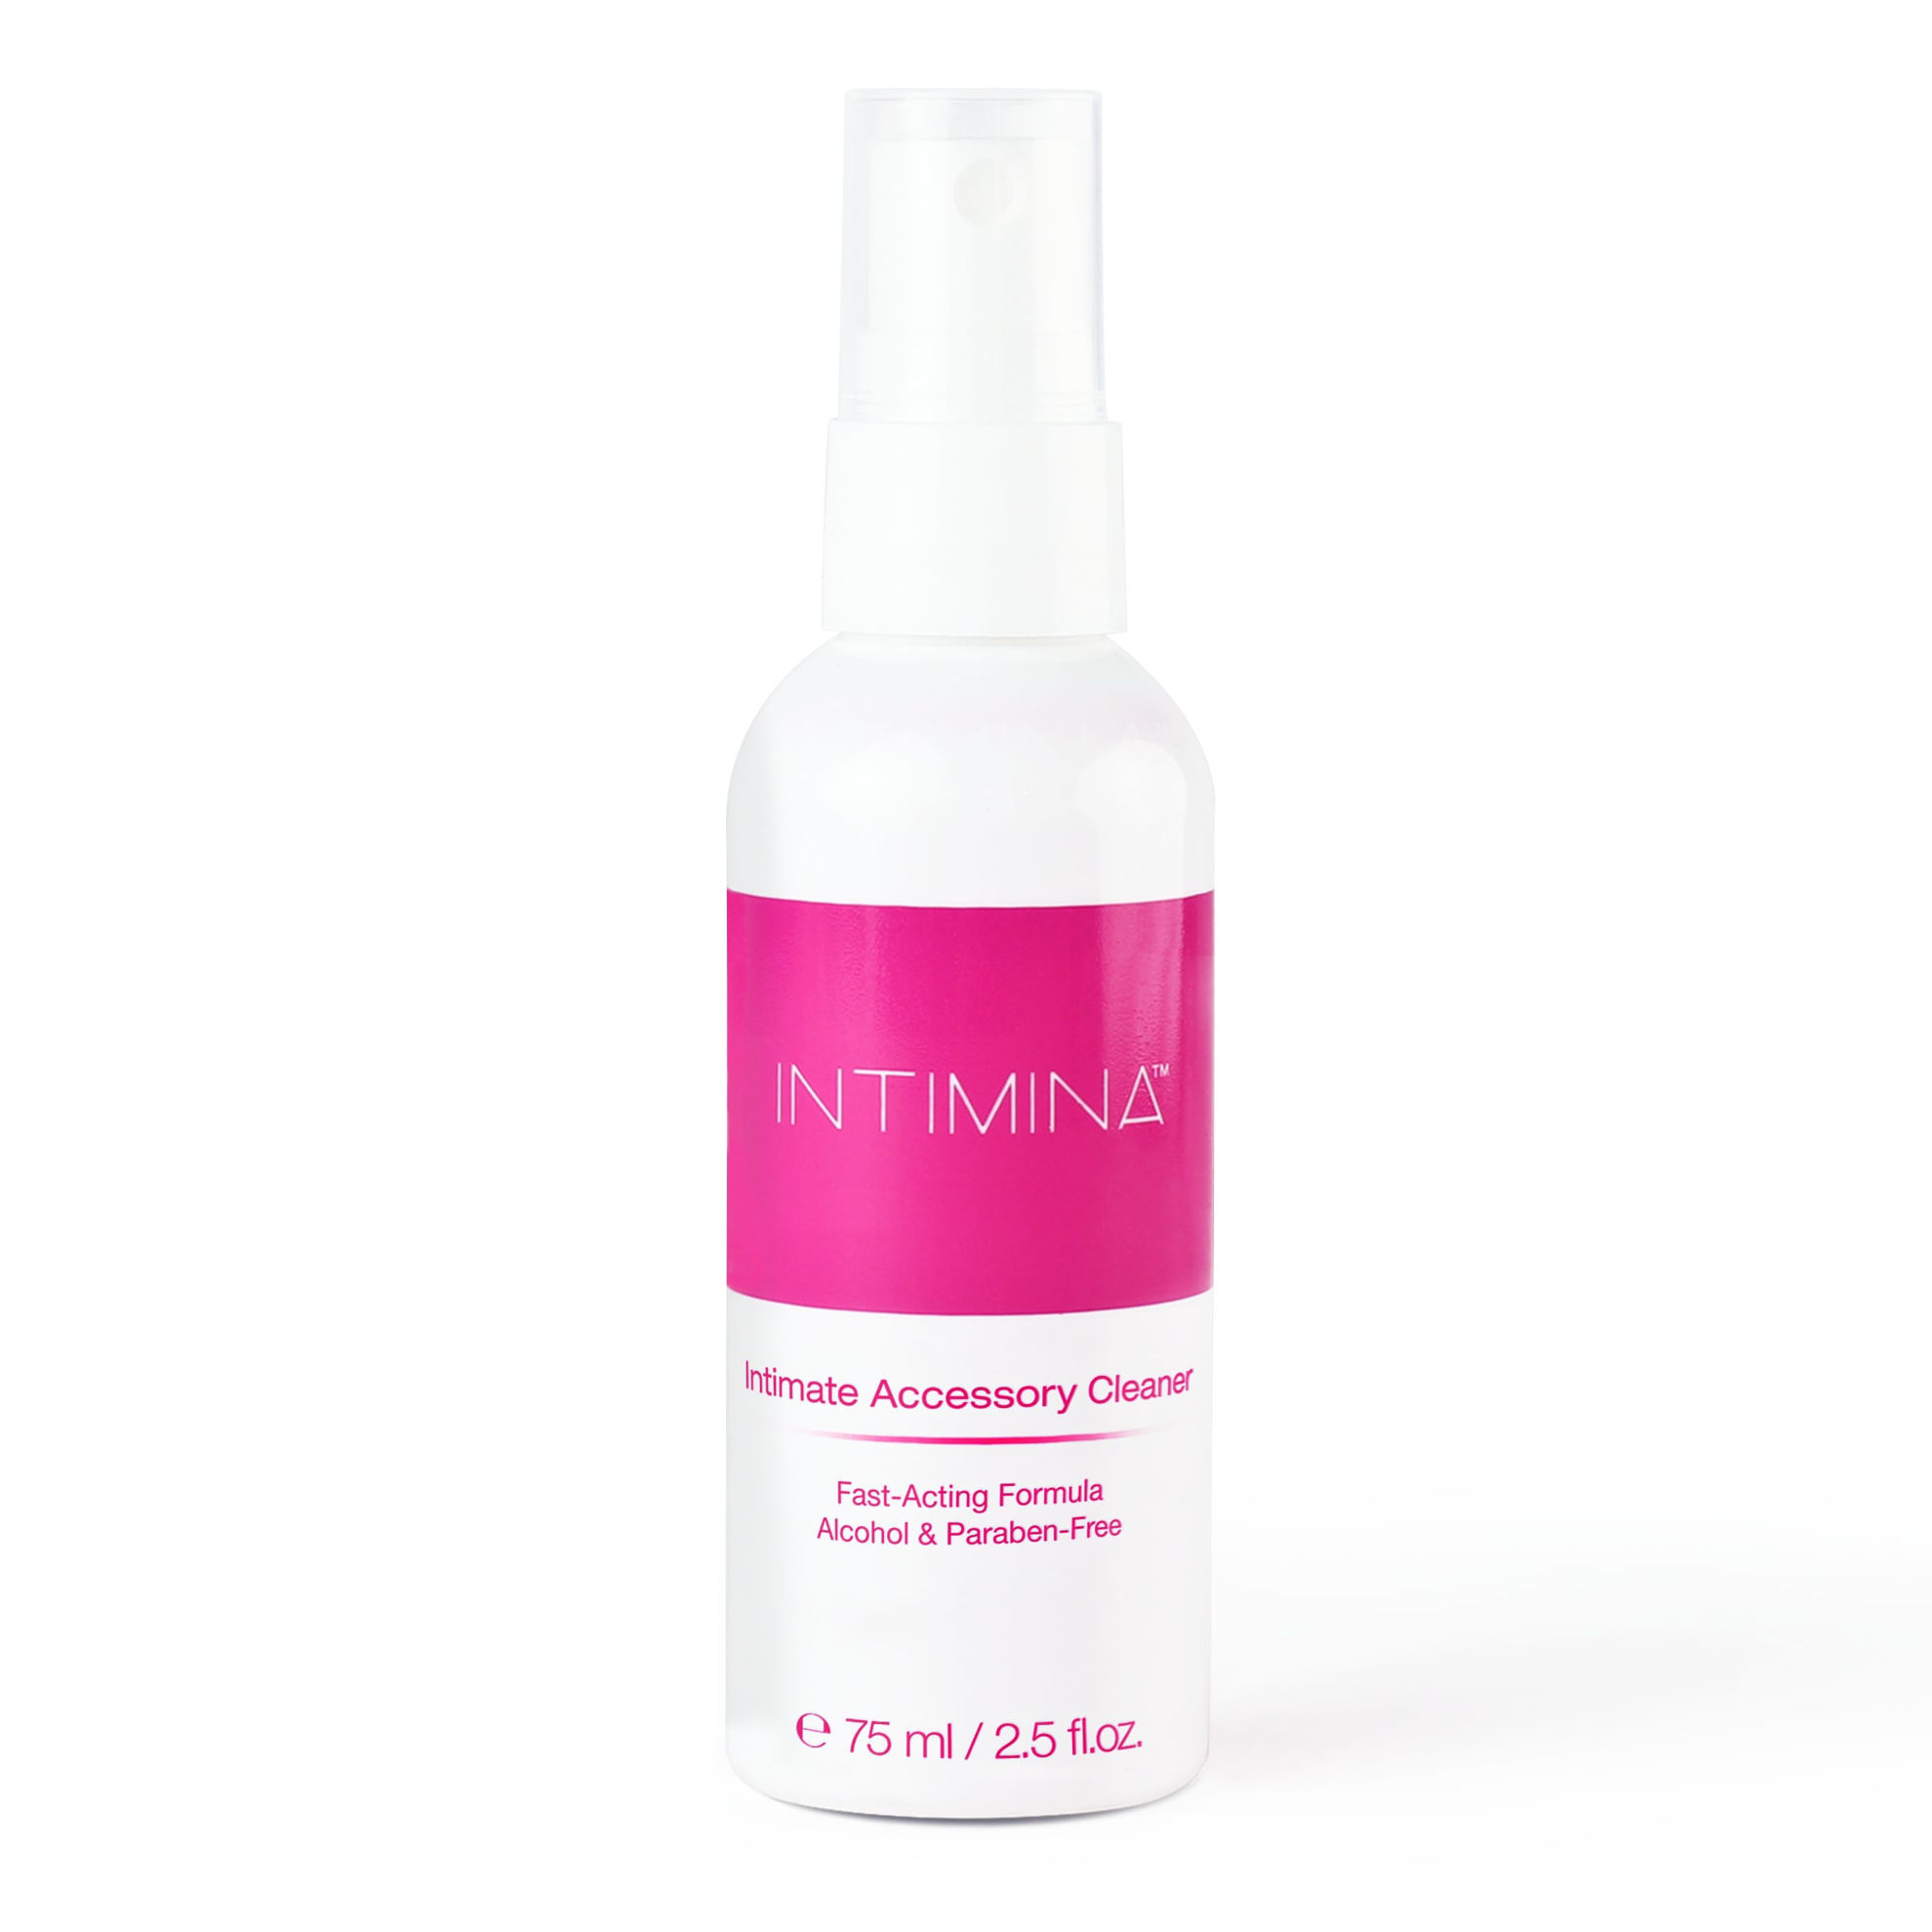 Poza Intimina - Intimate Accessory Cleaner